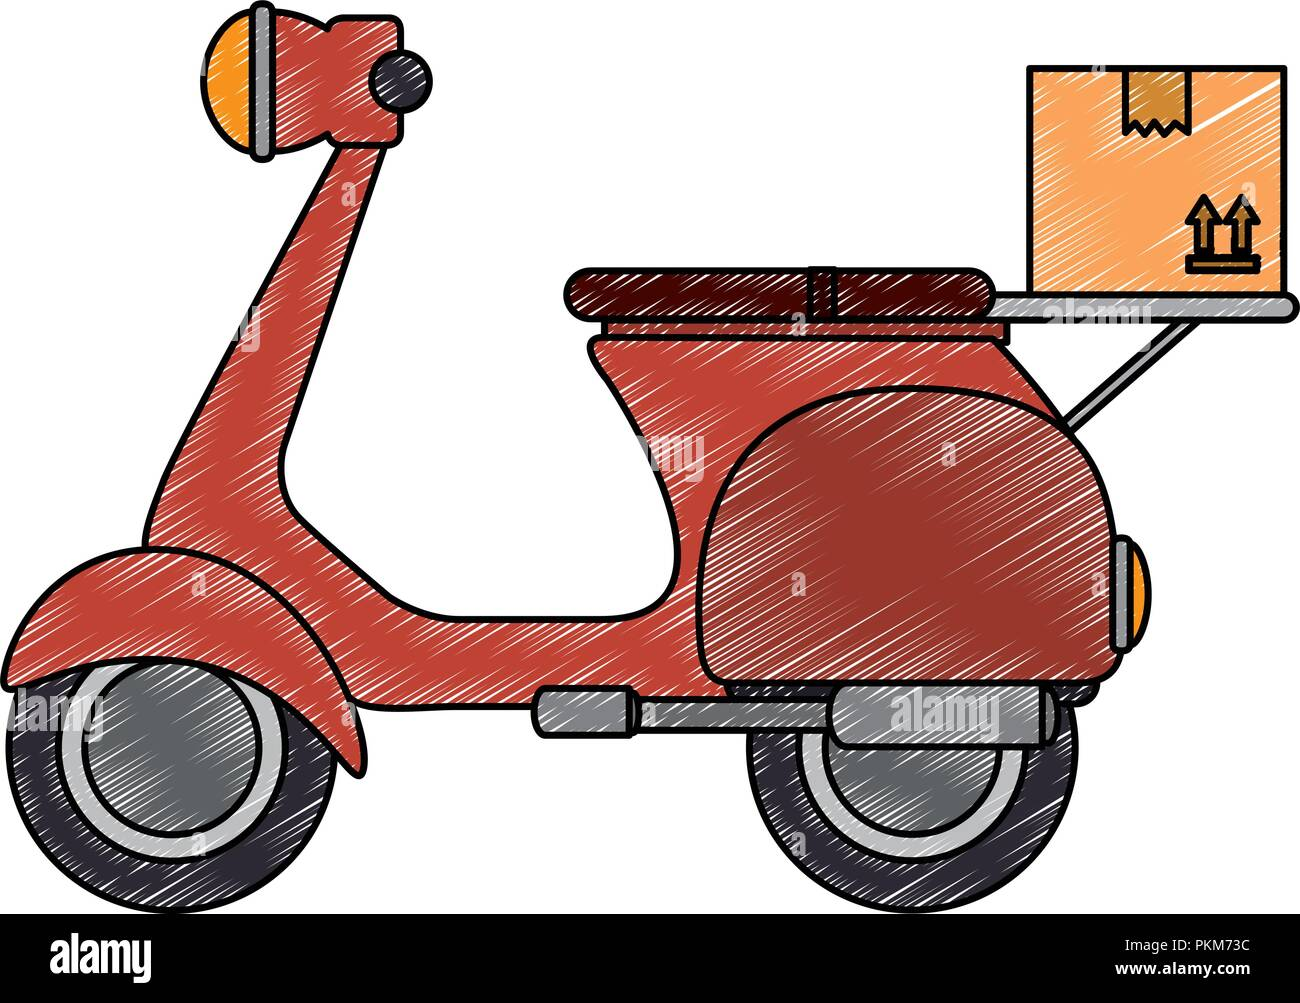 scooter motorcycle with box - Stock Image